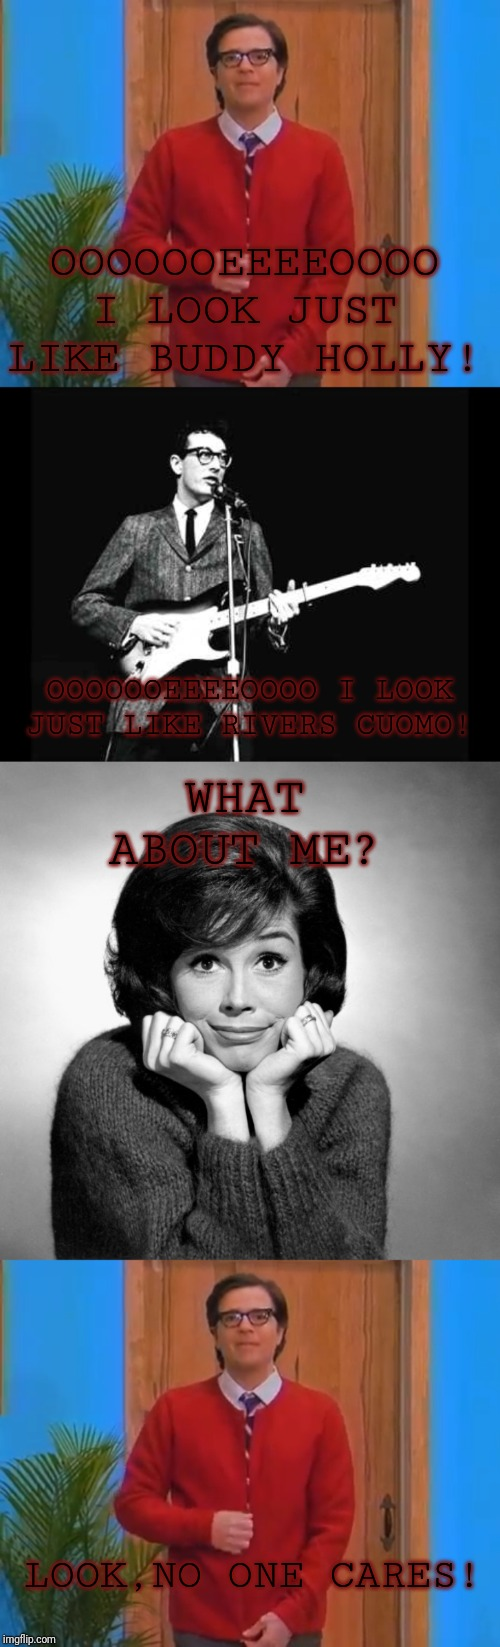 OOOOOOEEEEOOOO I LOOK JUST LIKE BUDDY HOLLY! OOOOOOEEEEOOOO I LOOK JUST LIKE RIVERS CUOMO! WHAT ABOUT ME? LOOK,NO ONE CARES! | image tagged in buddy holly,mary tyler moore,rivers cuomo in a cardigan | made w/ Imgflip meme maker